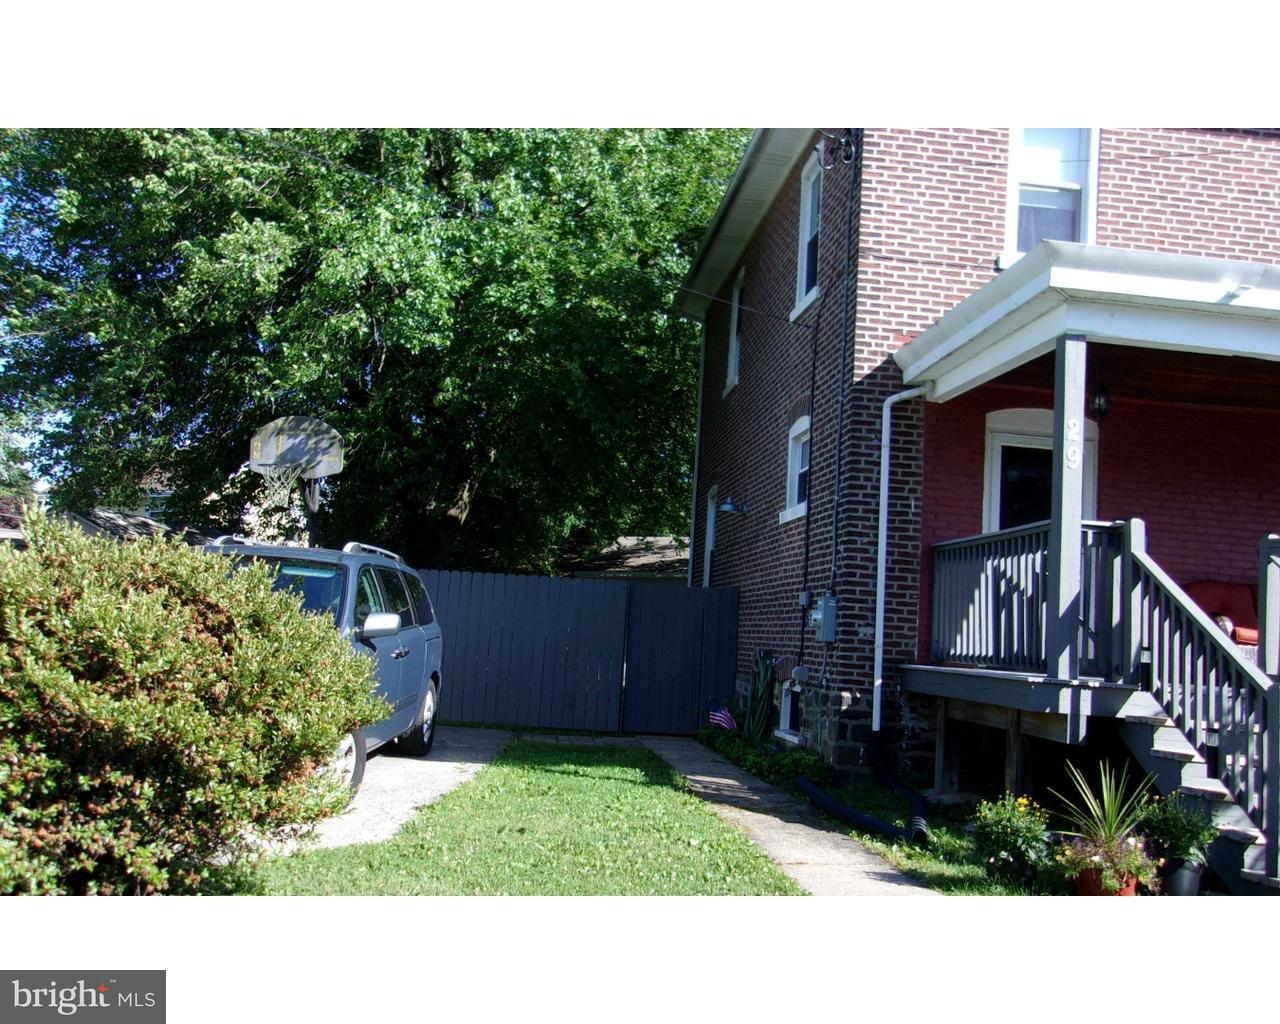 29 E ELBON RD, BROOKHAVEN - Listed at $180,000, BROOKHAVEN